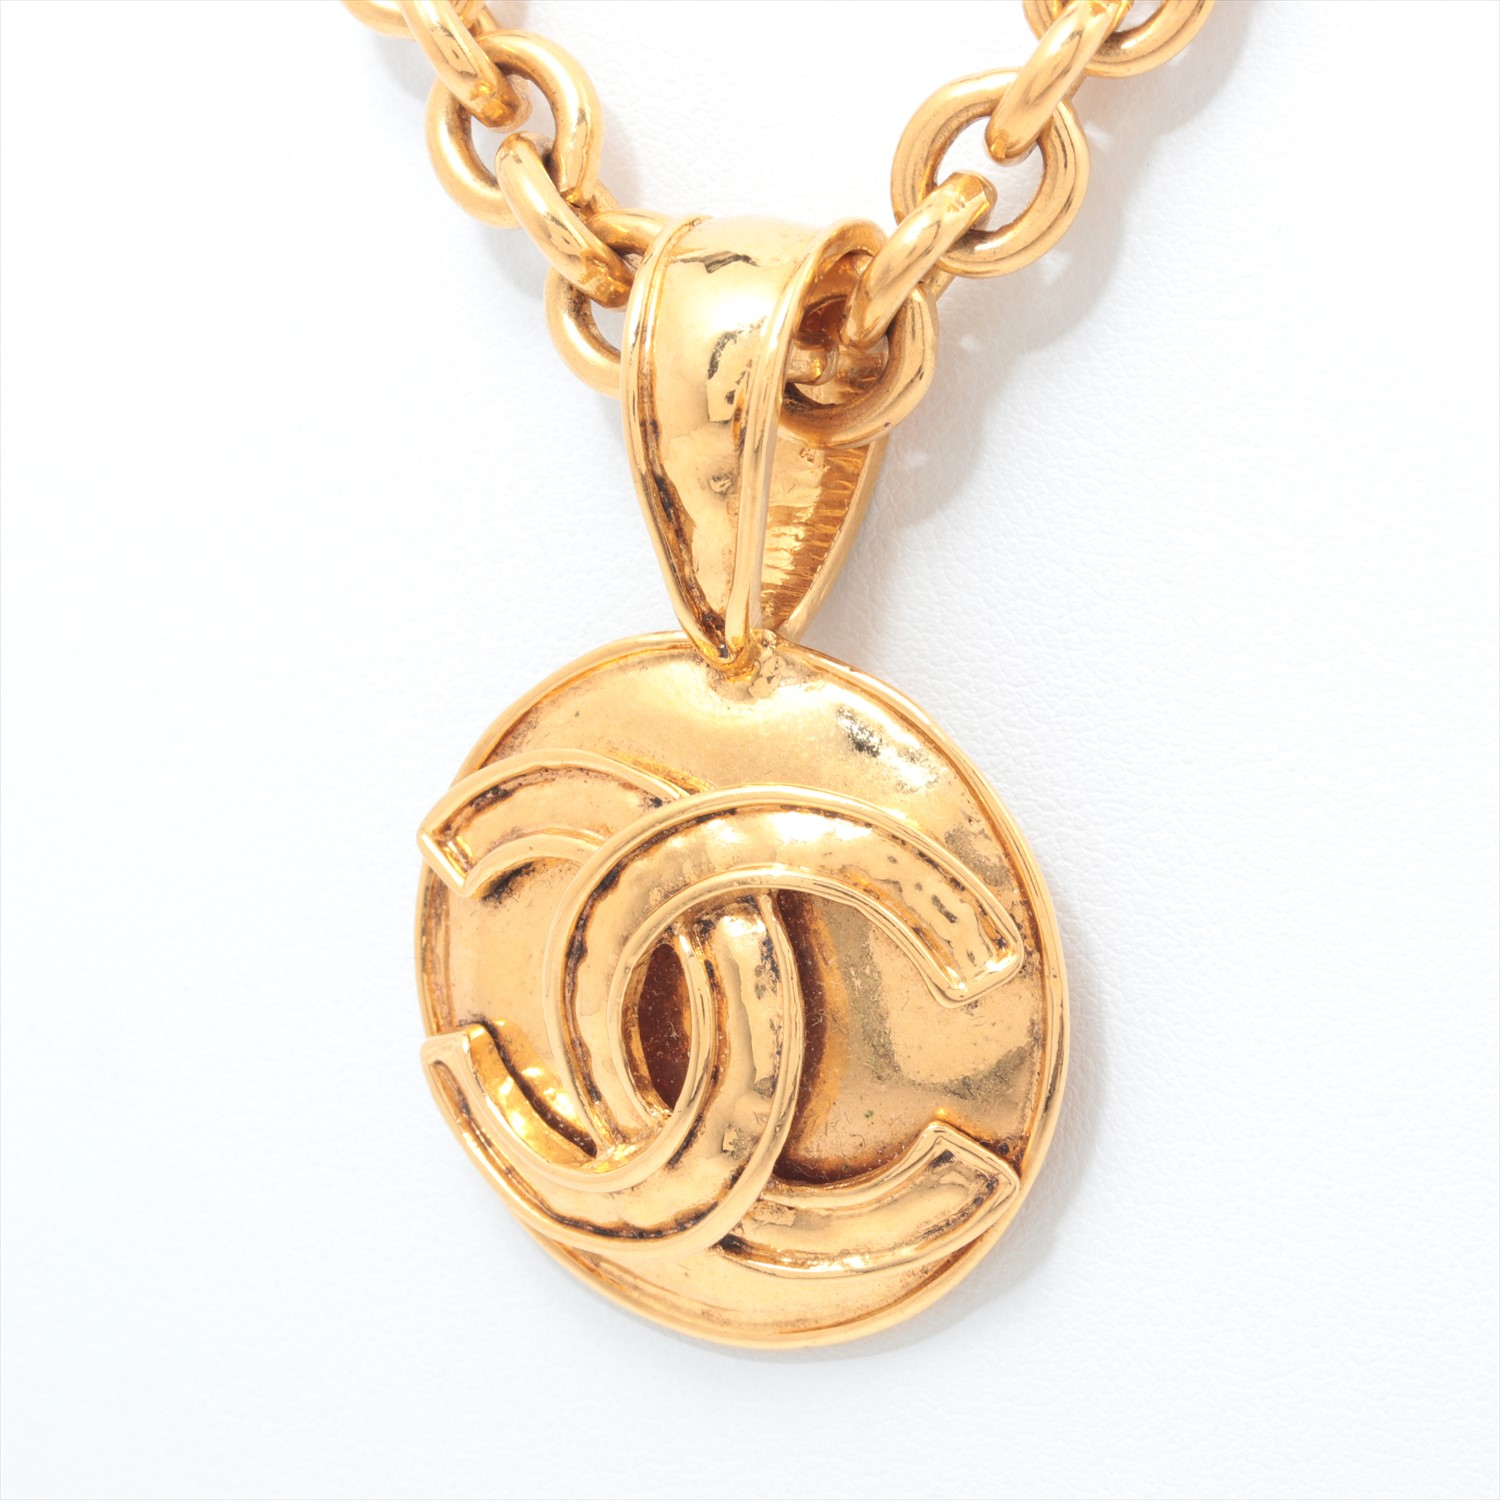 [Used goods] Chanel necklace metal material Gold 94P here mark